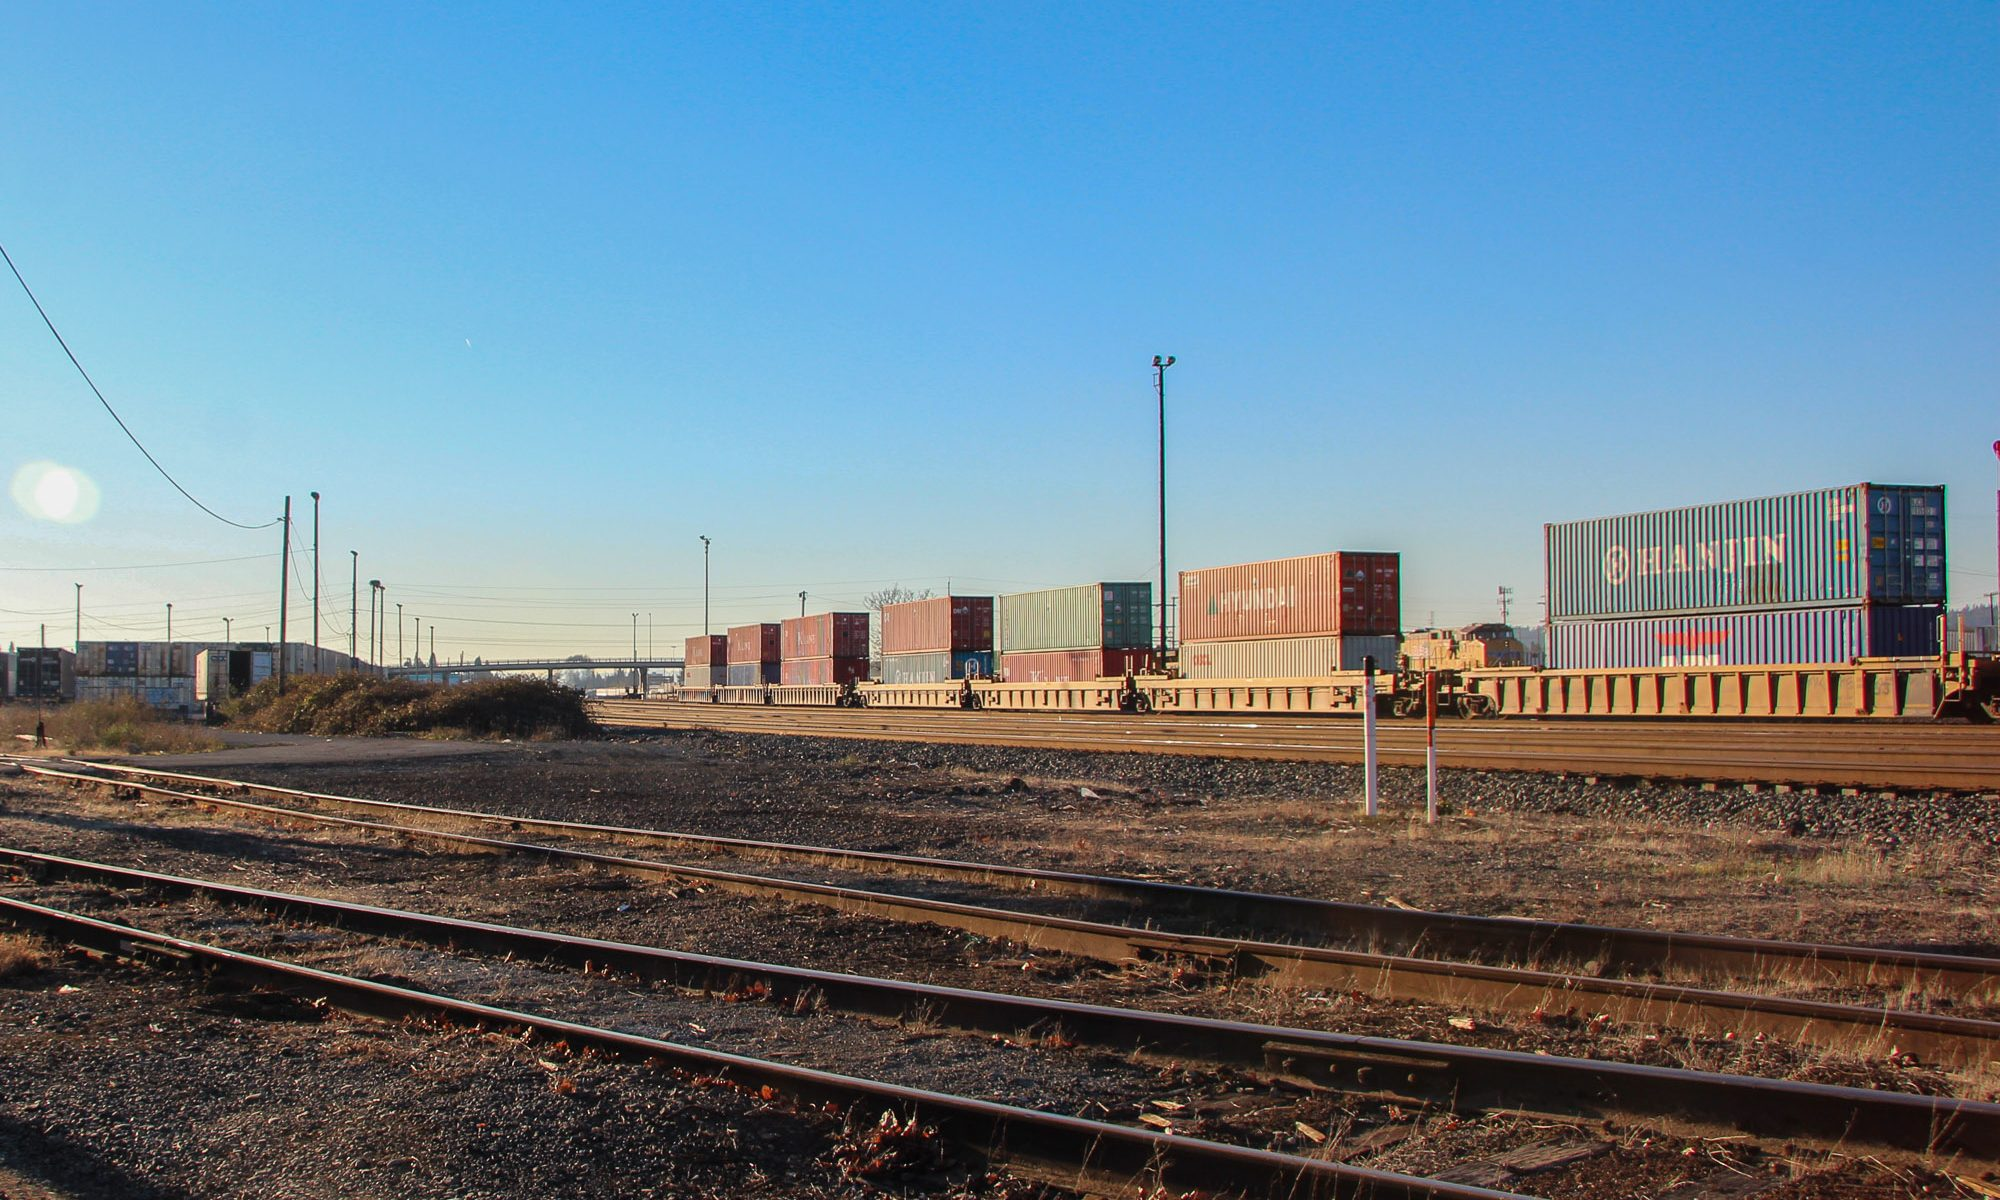 This article is about Docker containes, but here are some shipping containers on railcars. Portland, OR, 2011.